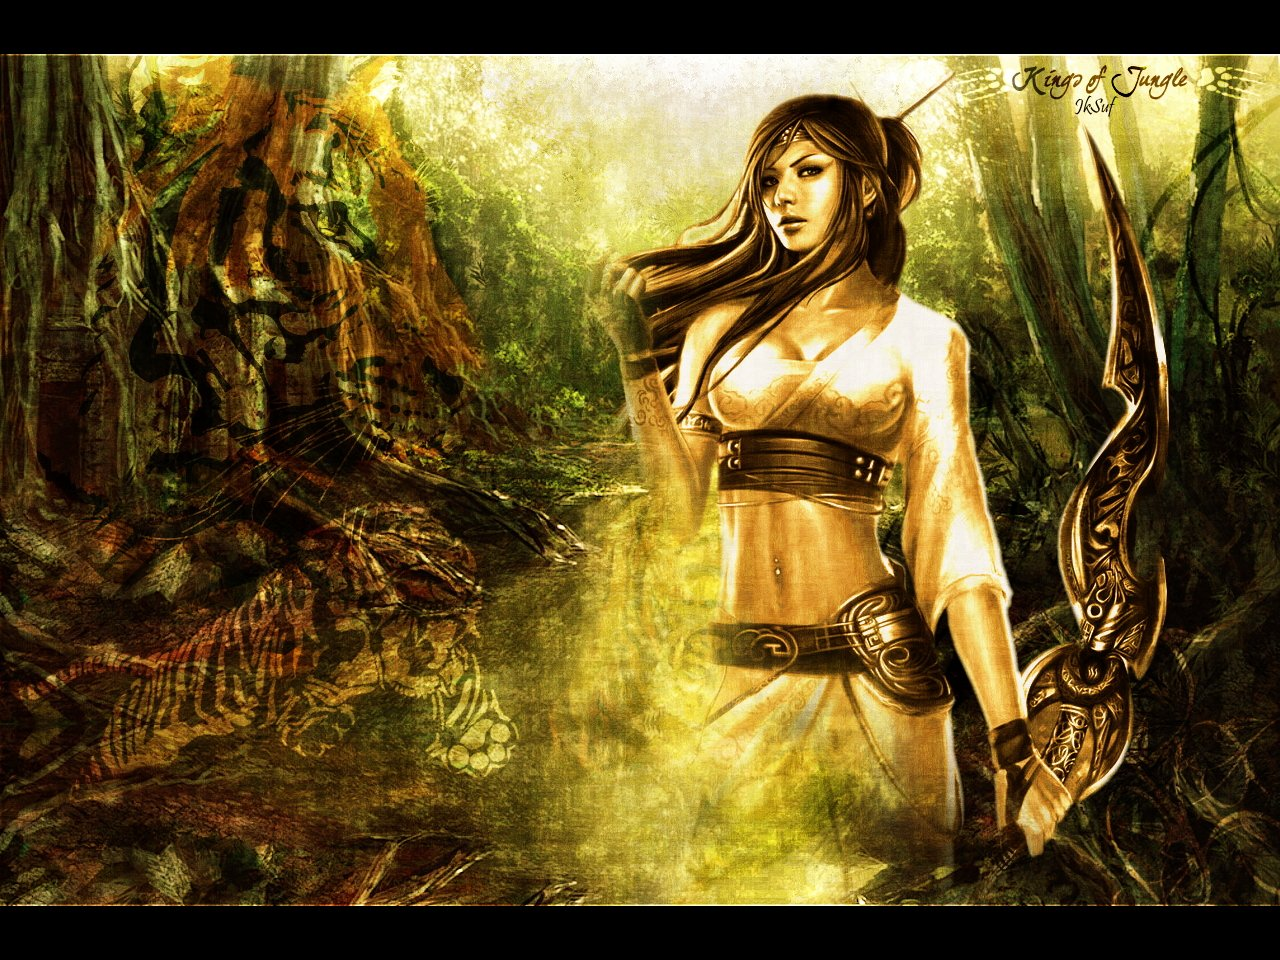 Wallpapers Fantasy and Science Fiction Gods - Goddesses Kings Of Jungle